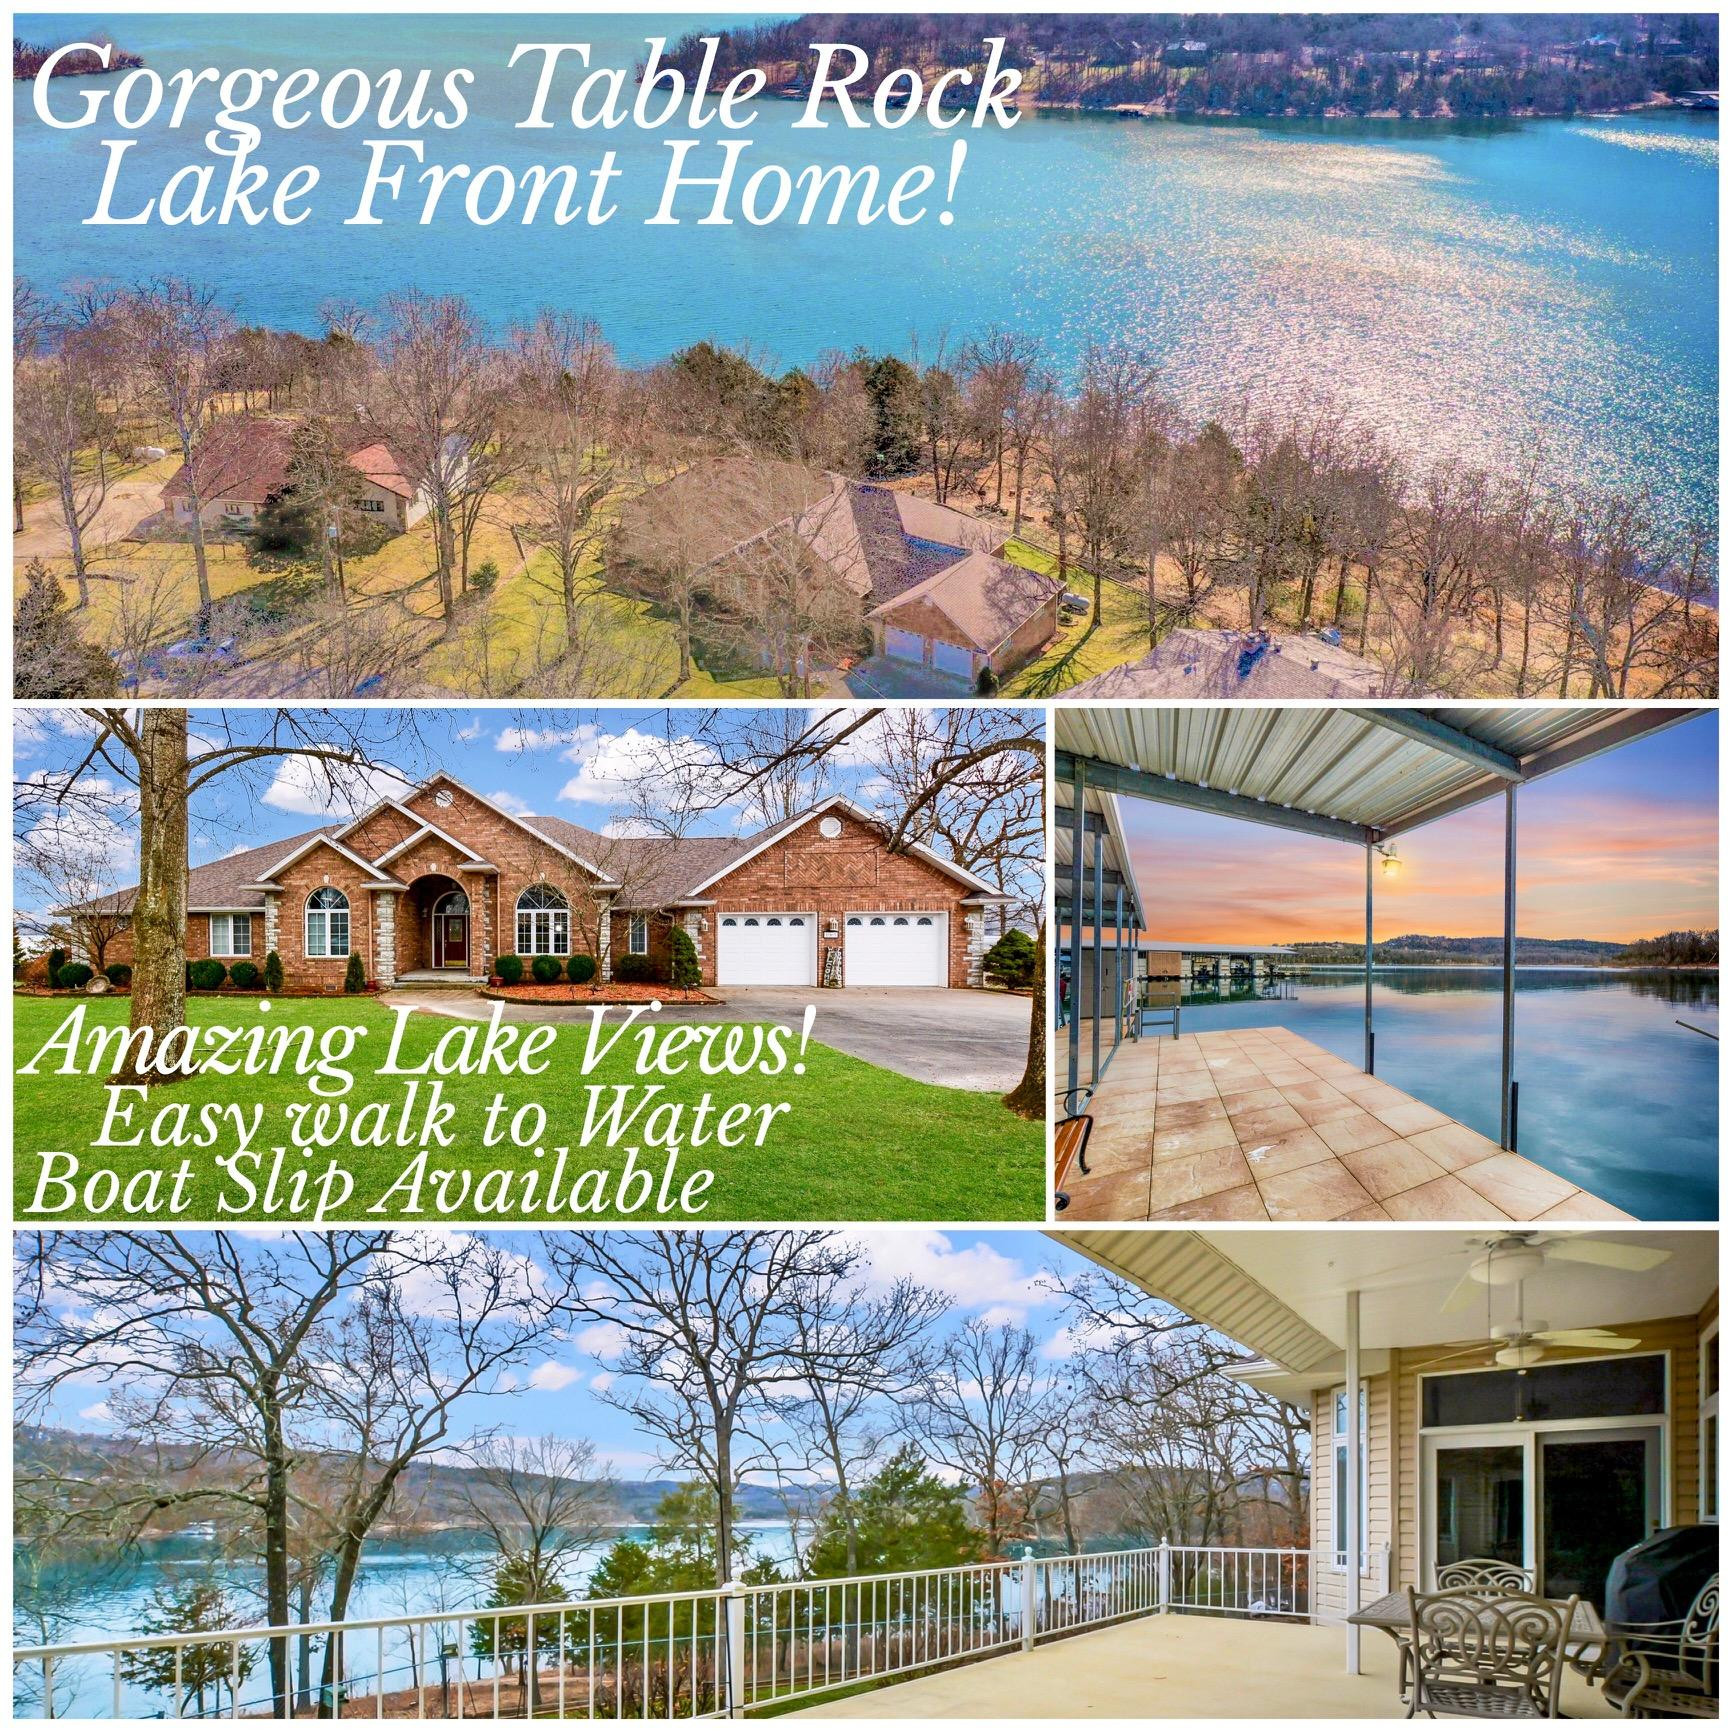 163 South Lakeshore Drive Blue Eye, MO 65611